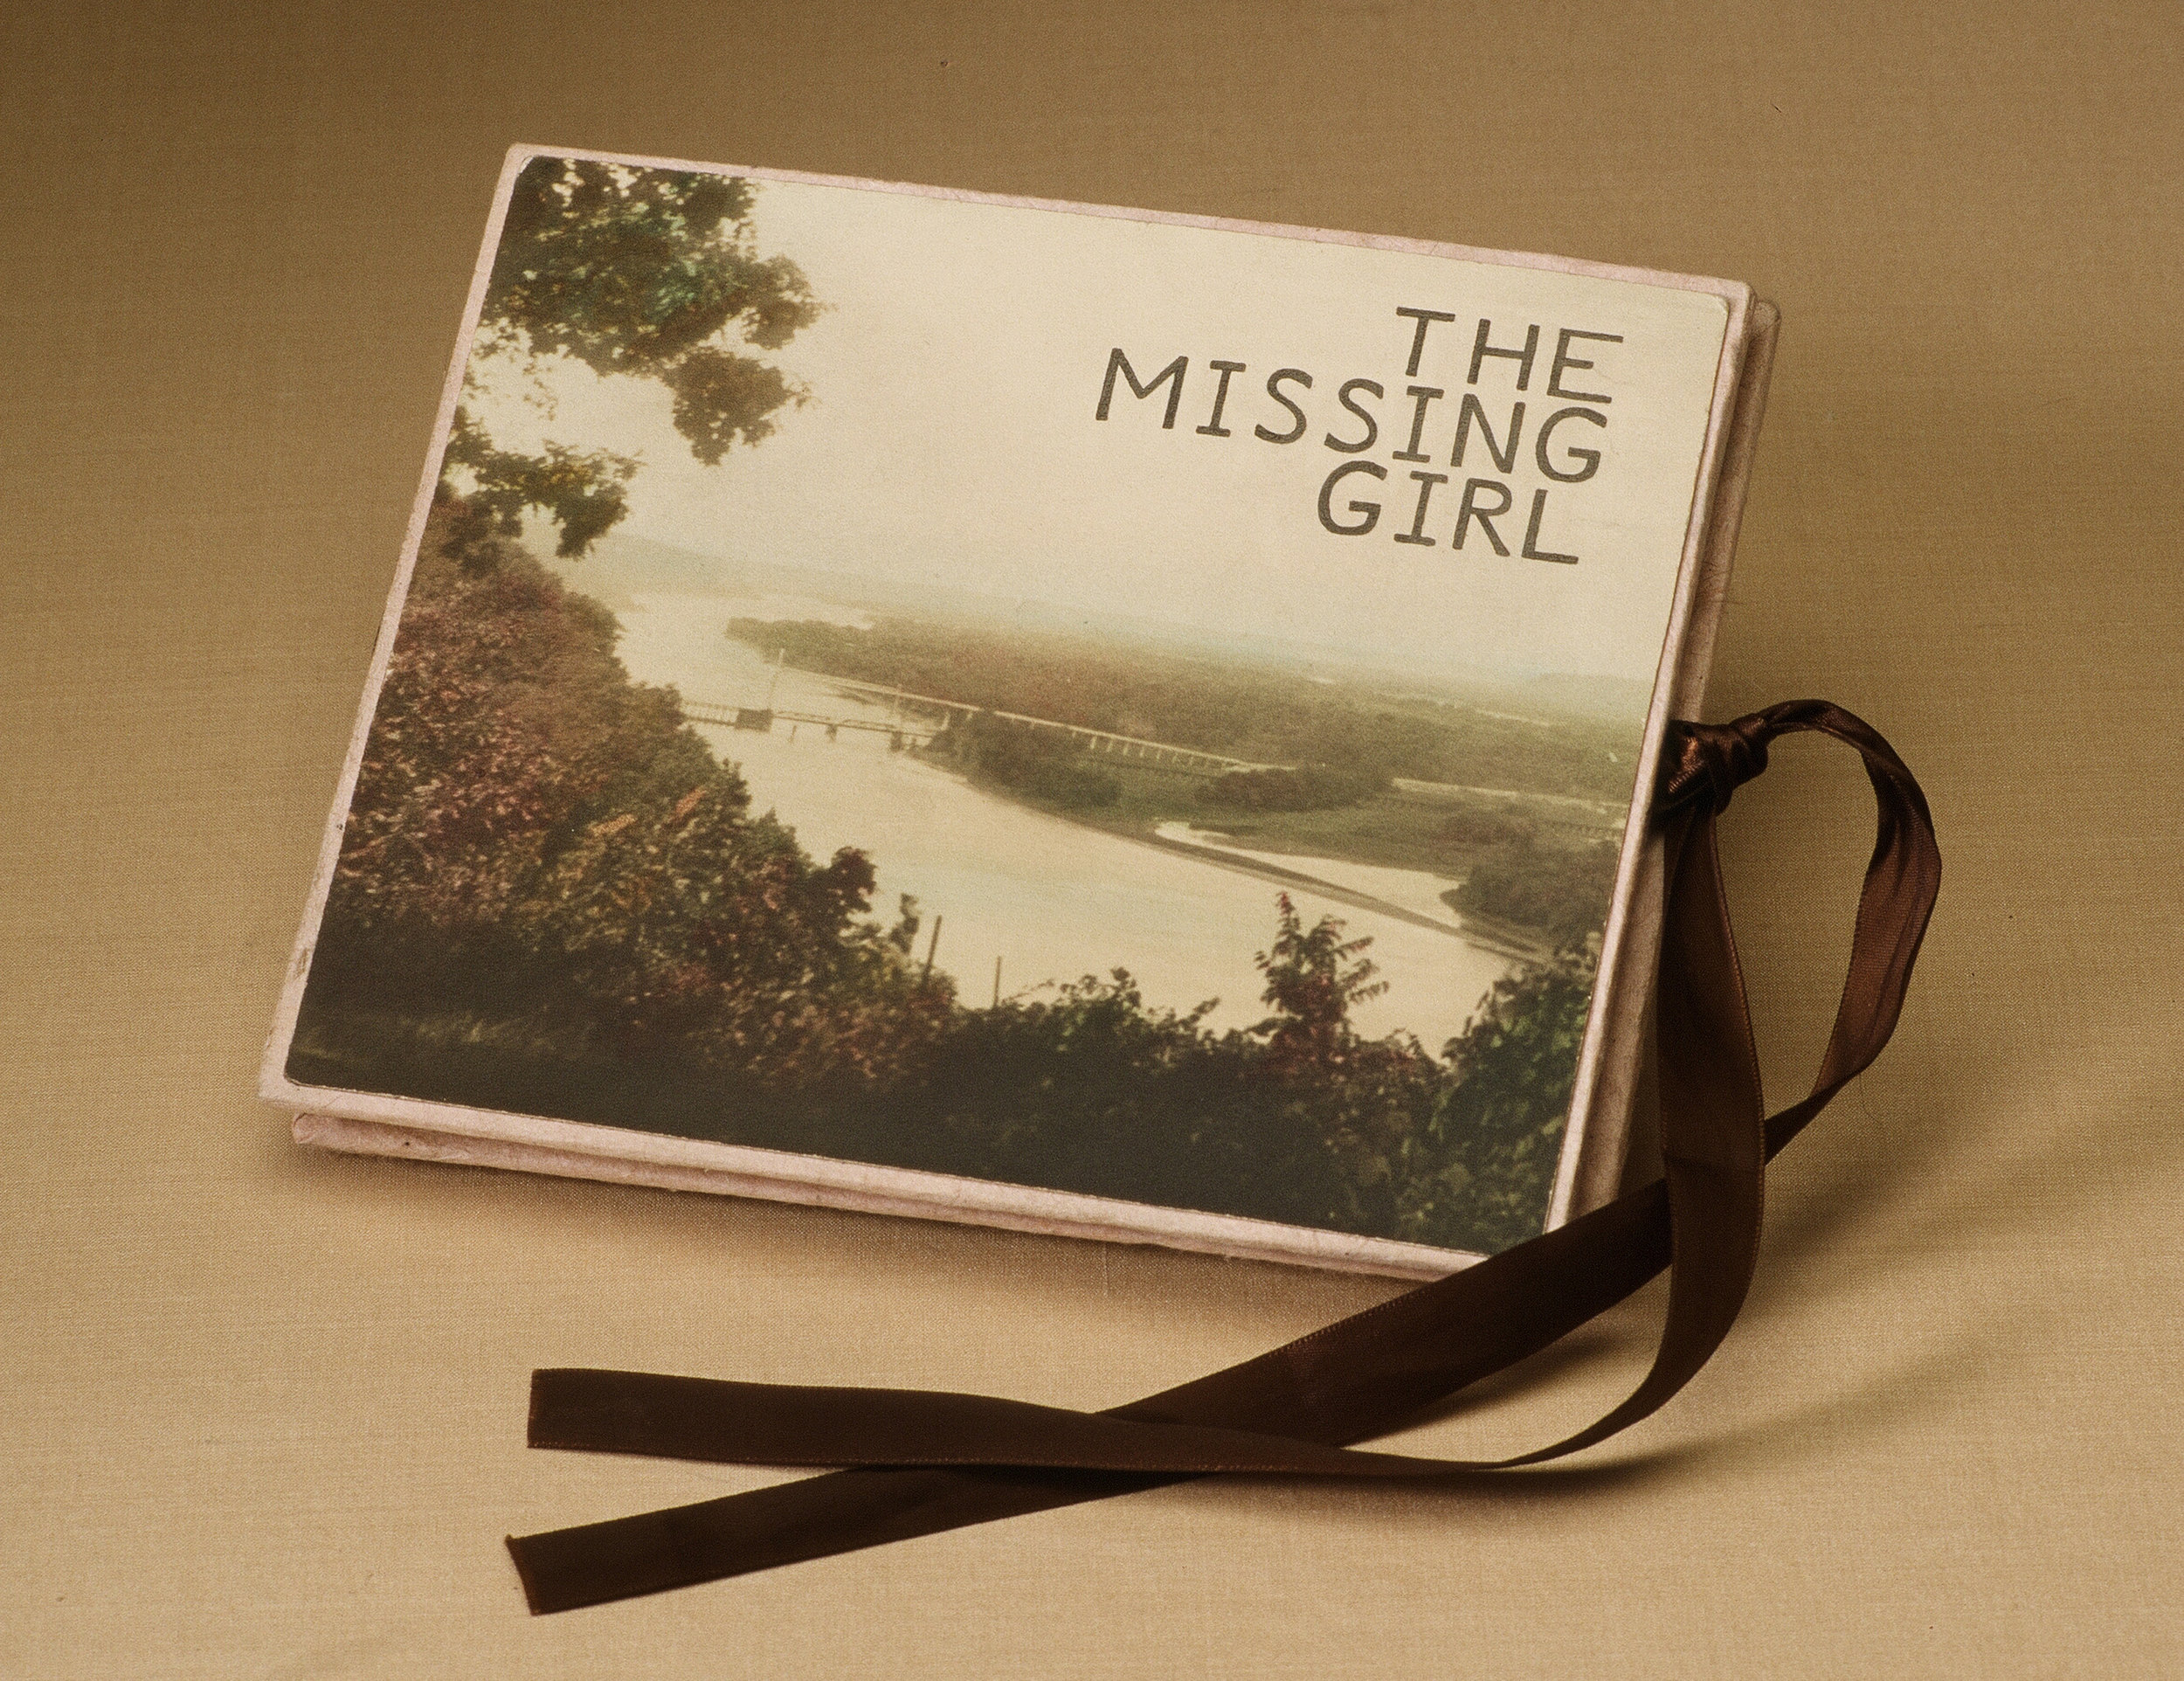 the missing girl_cover_crop.jpg